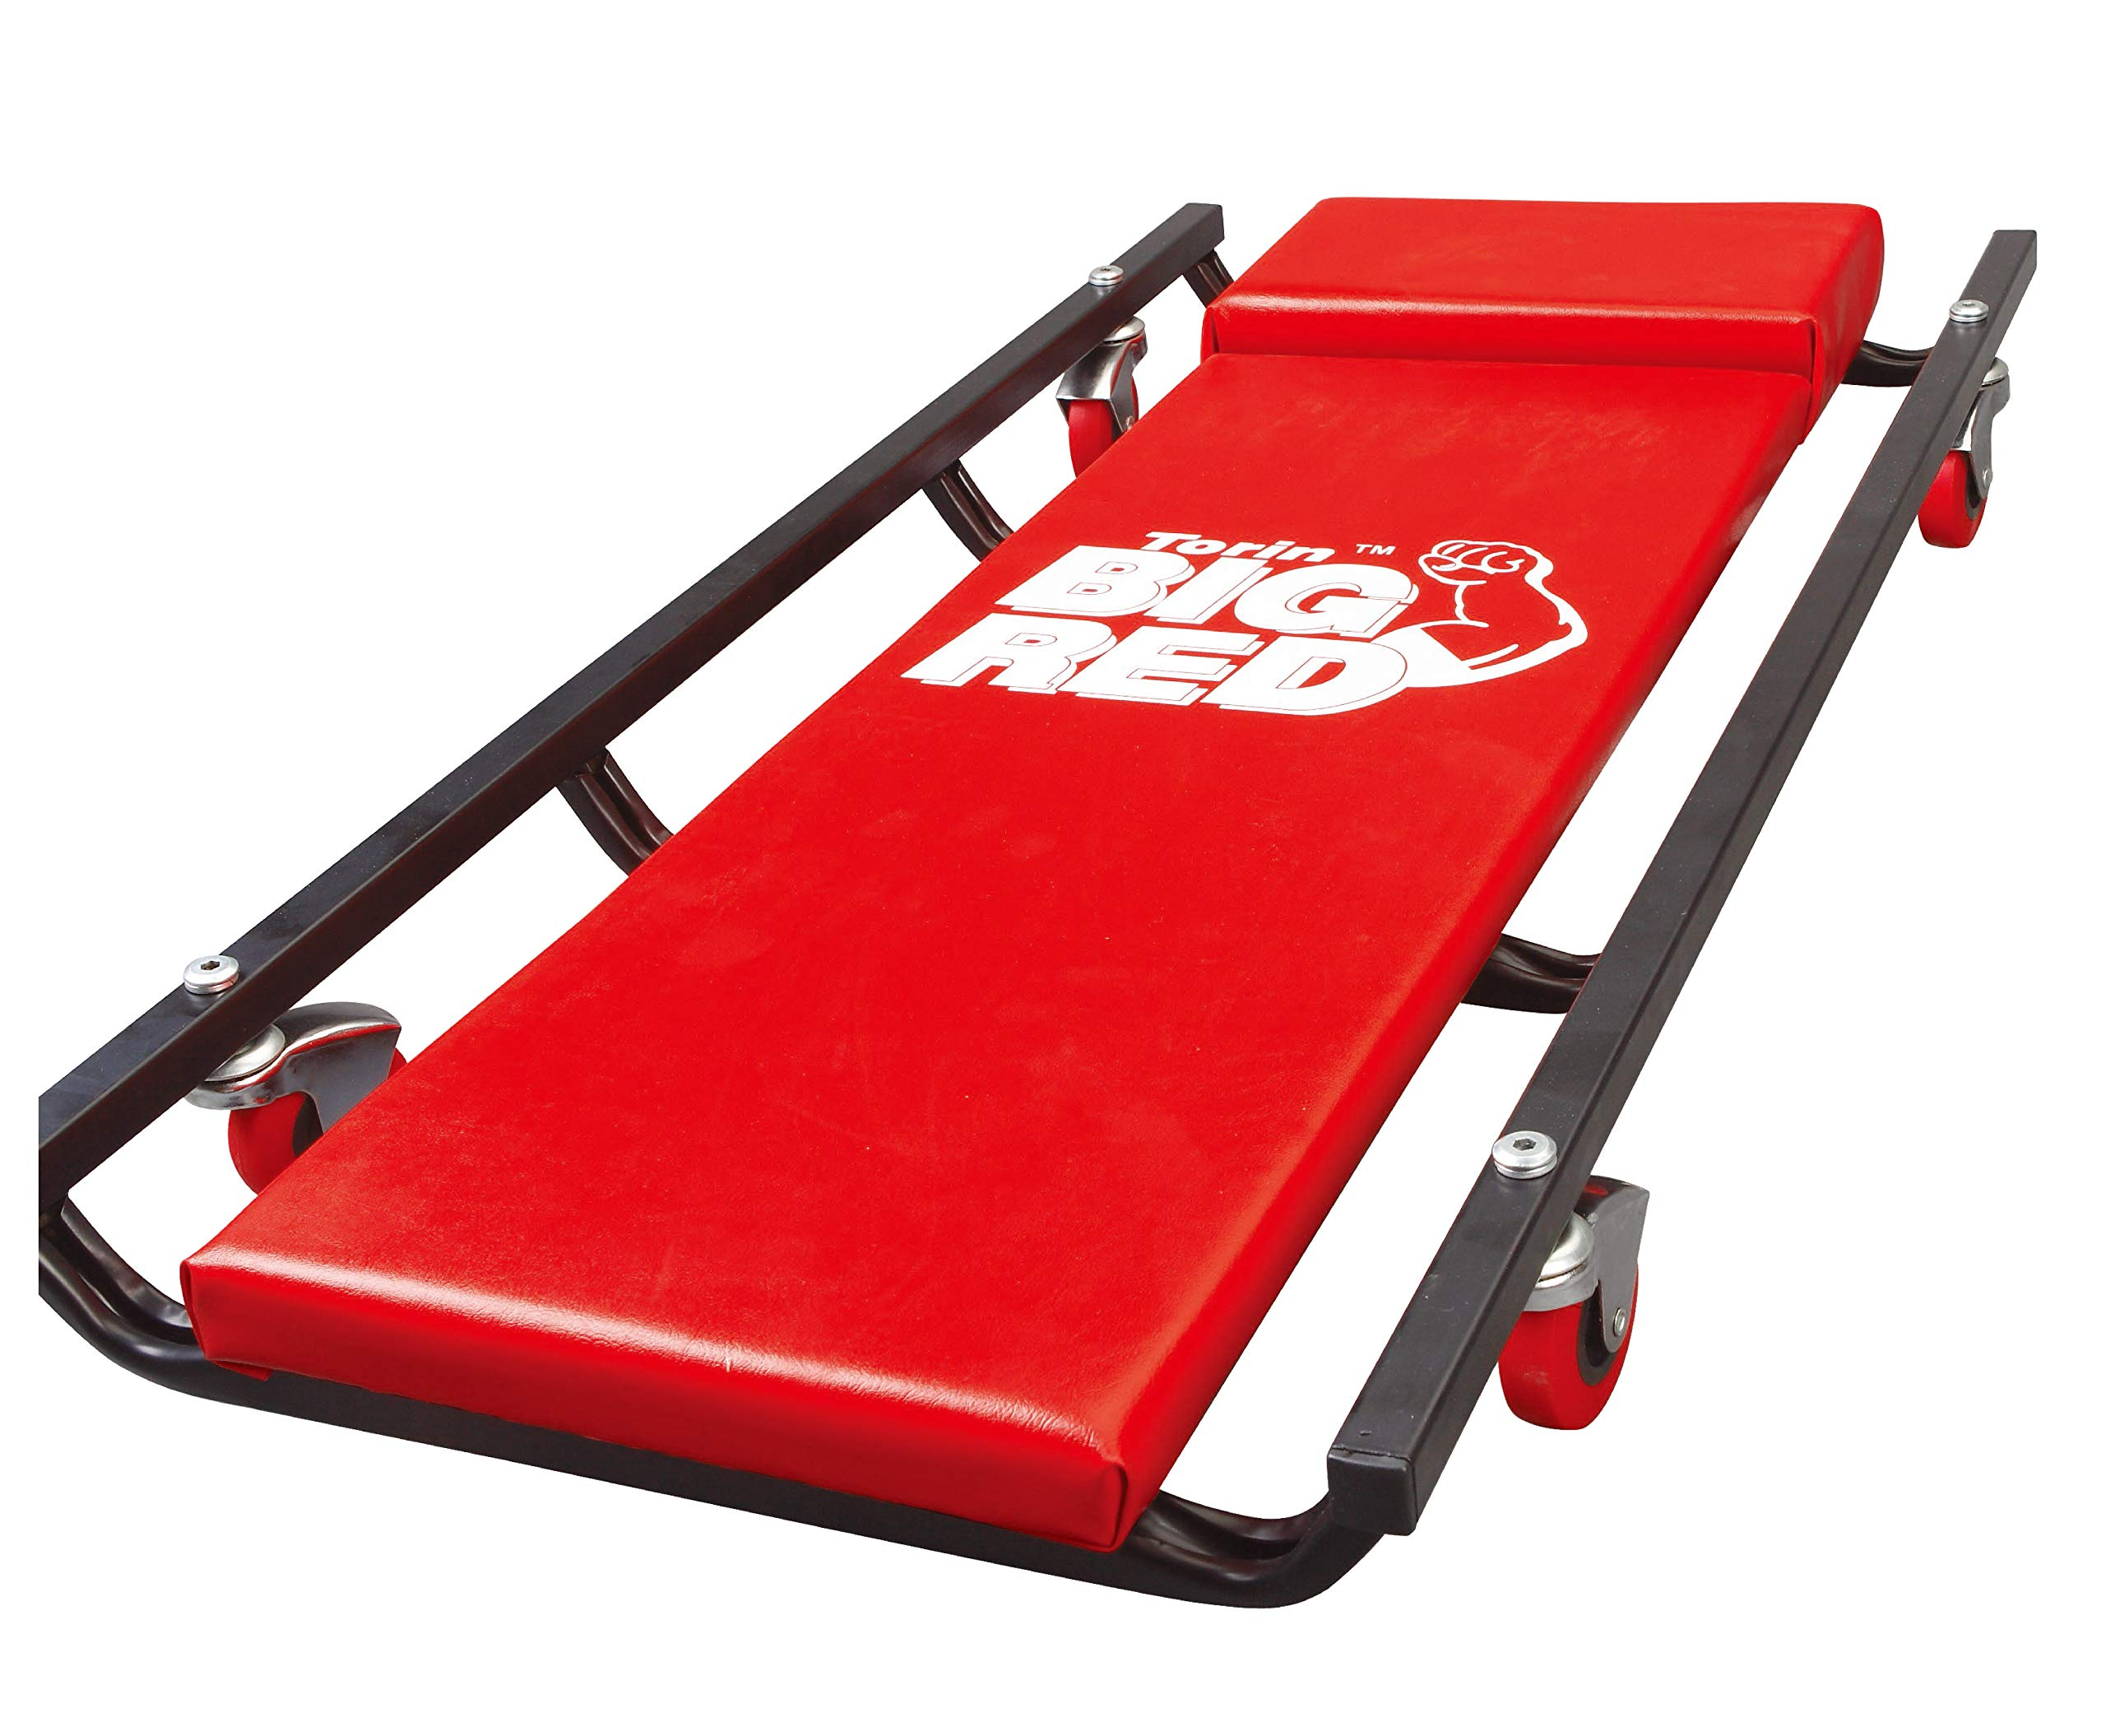 Torin Big Red Rolling Garage/Shop Creeper: 36'' Padded Mechanic Cart with 4 Casters, Red